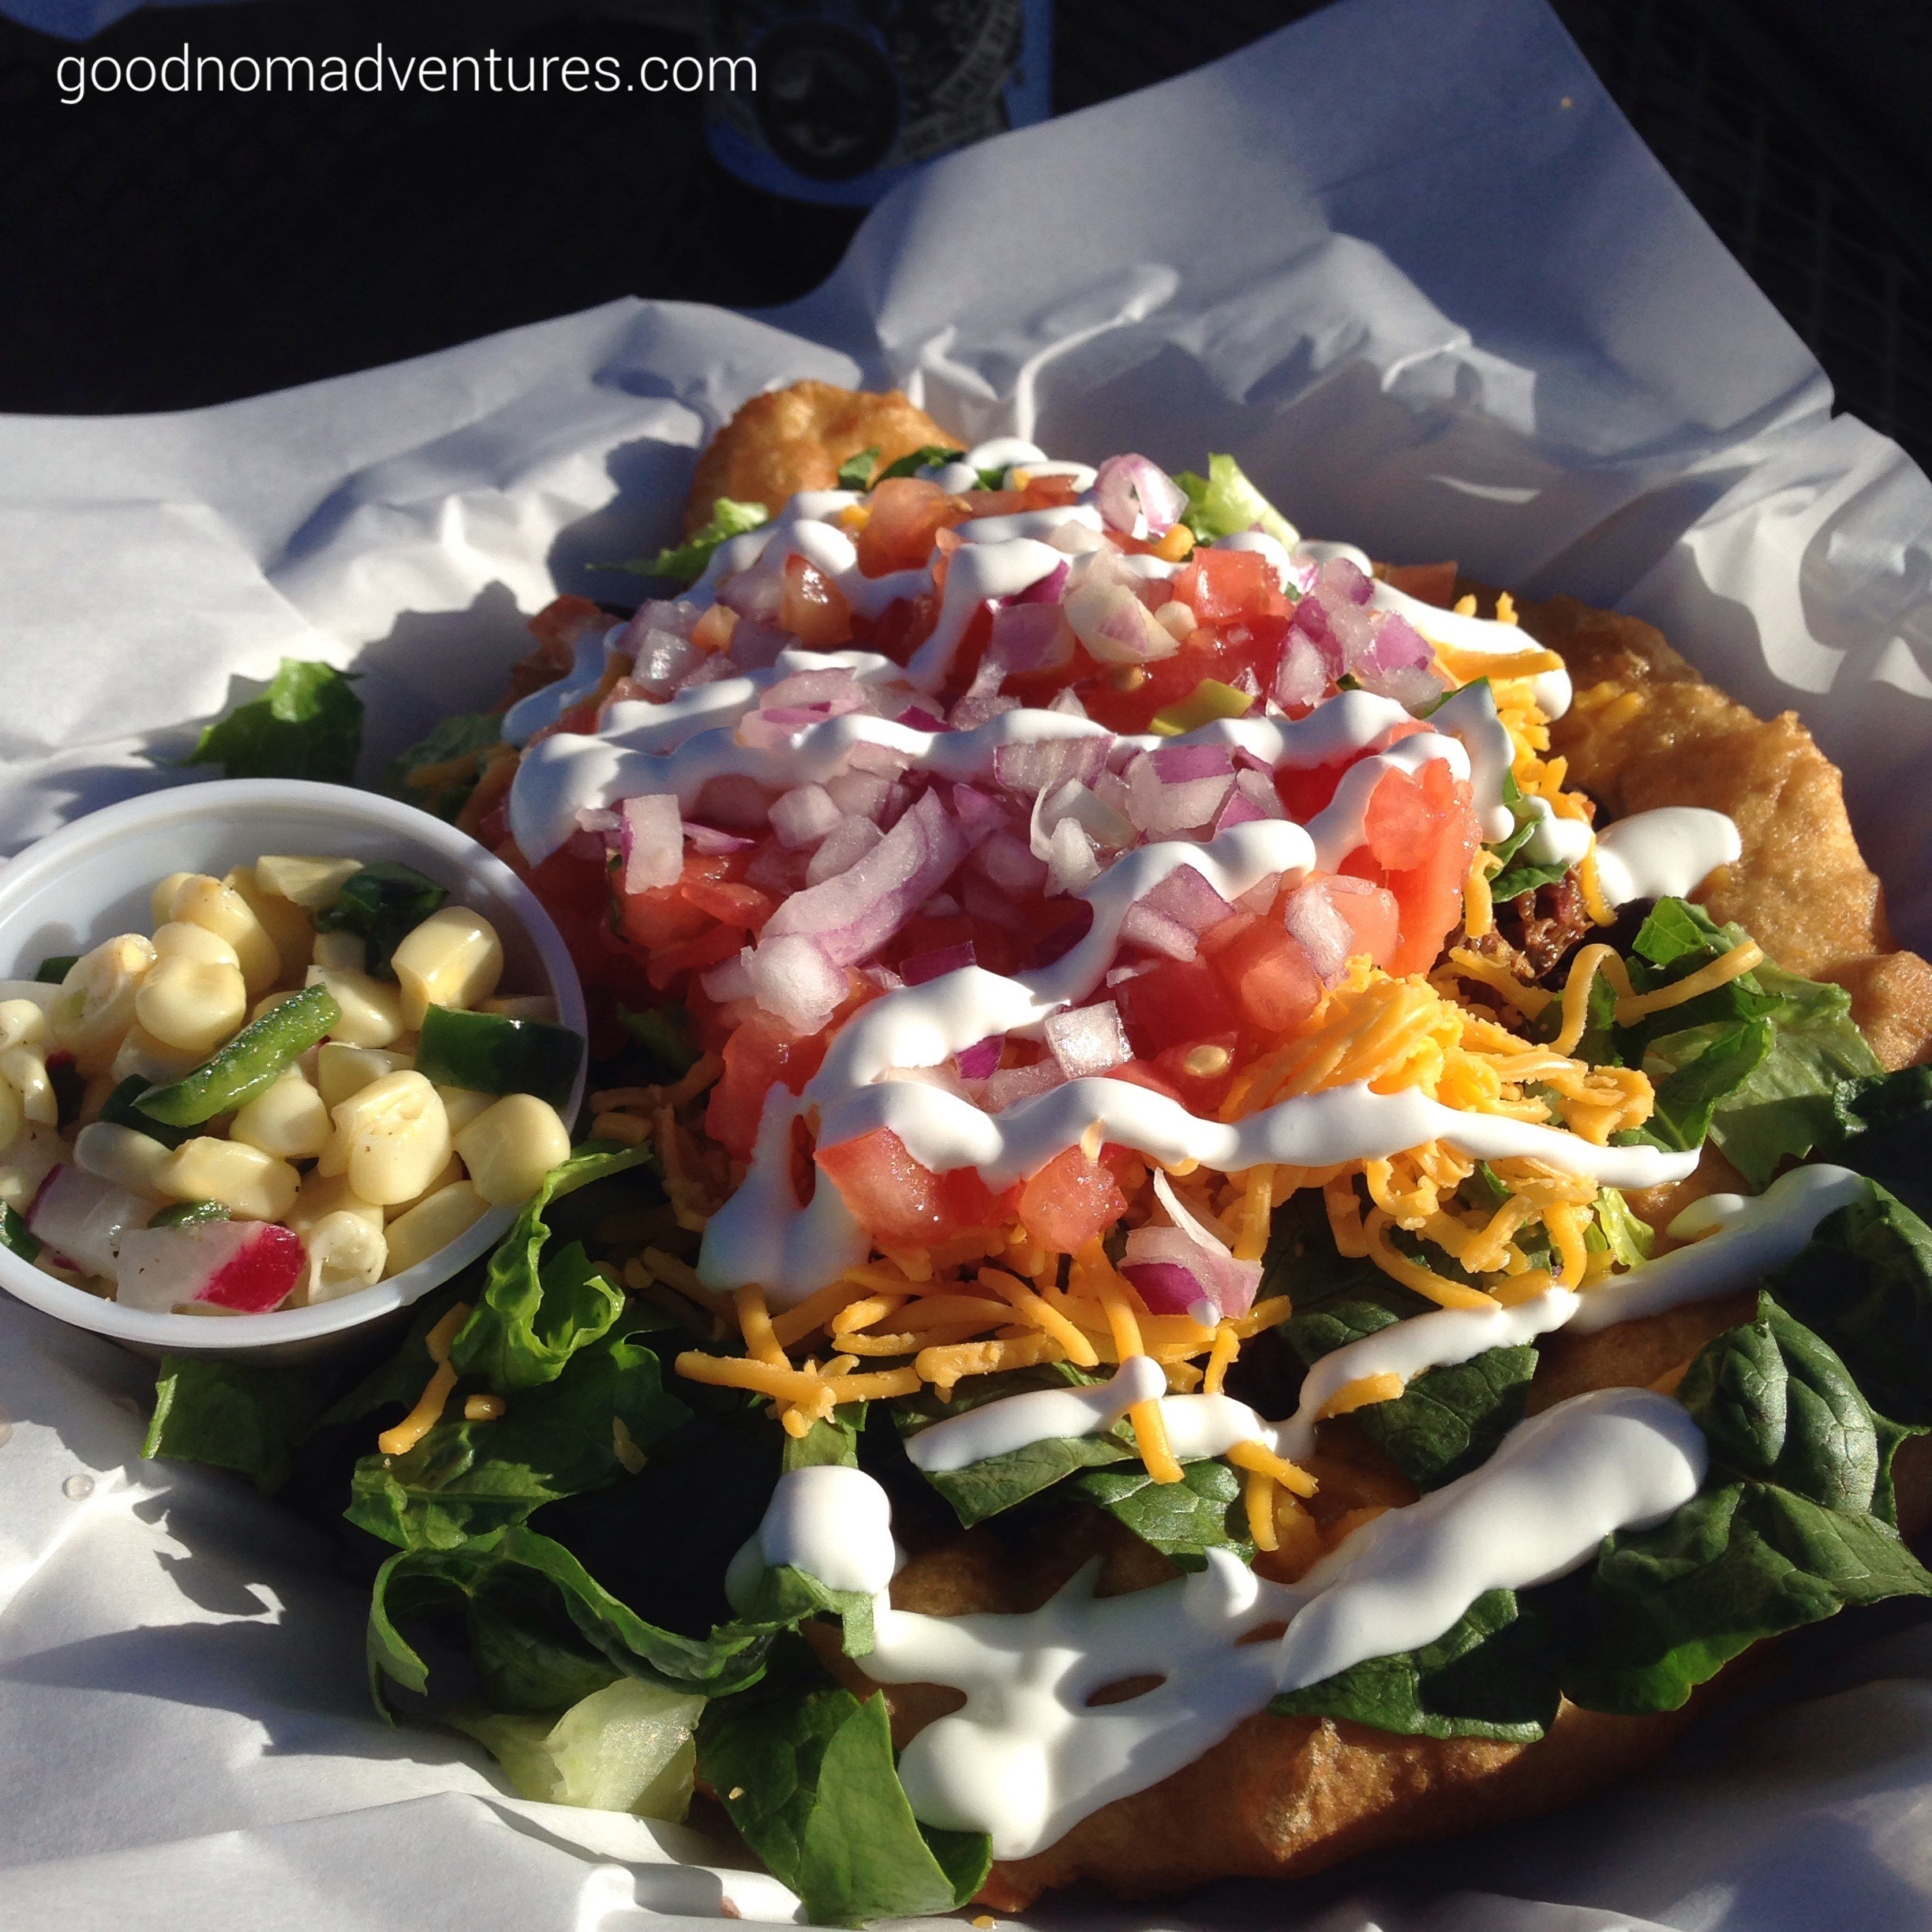 Indian Taco with shredded bison